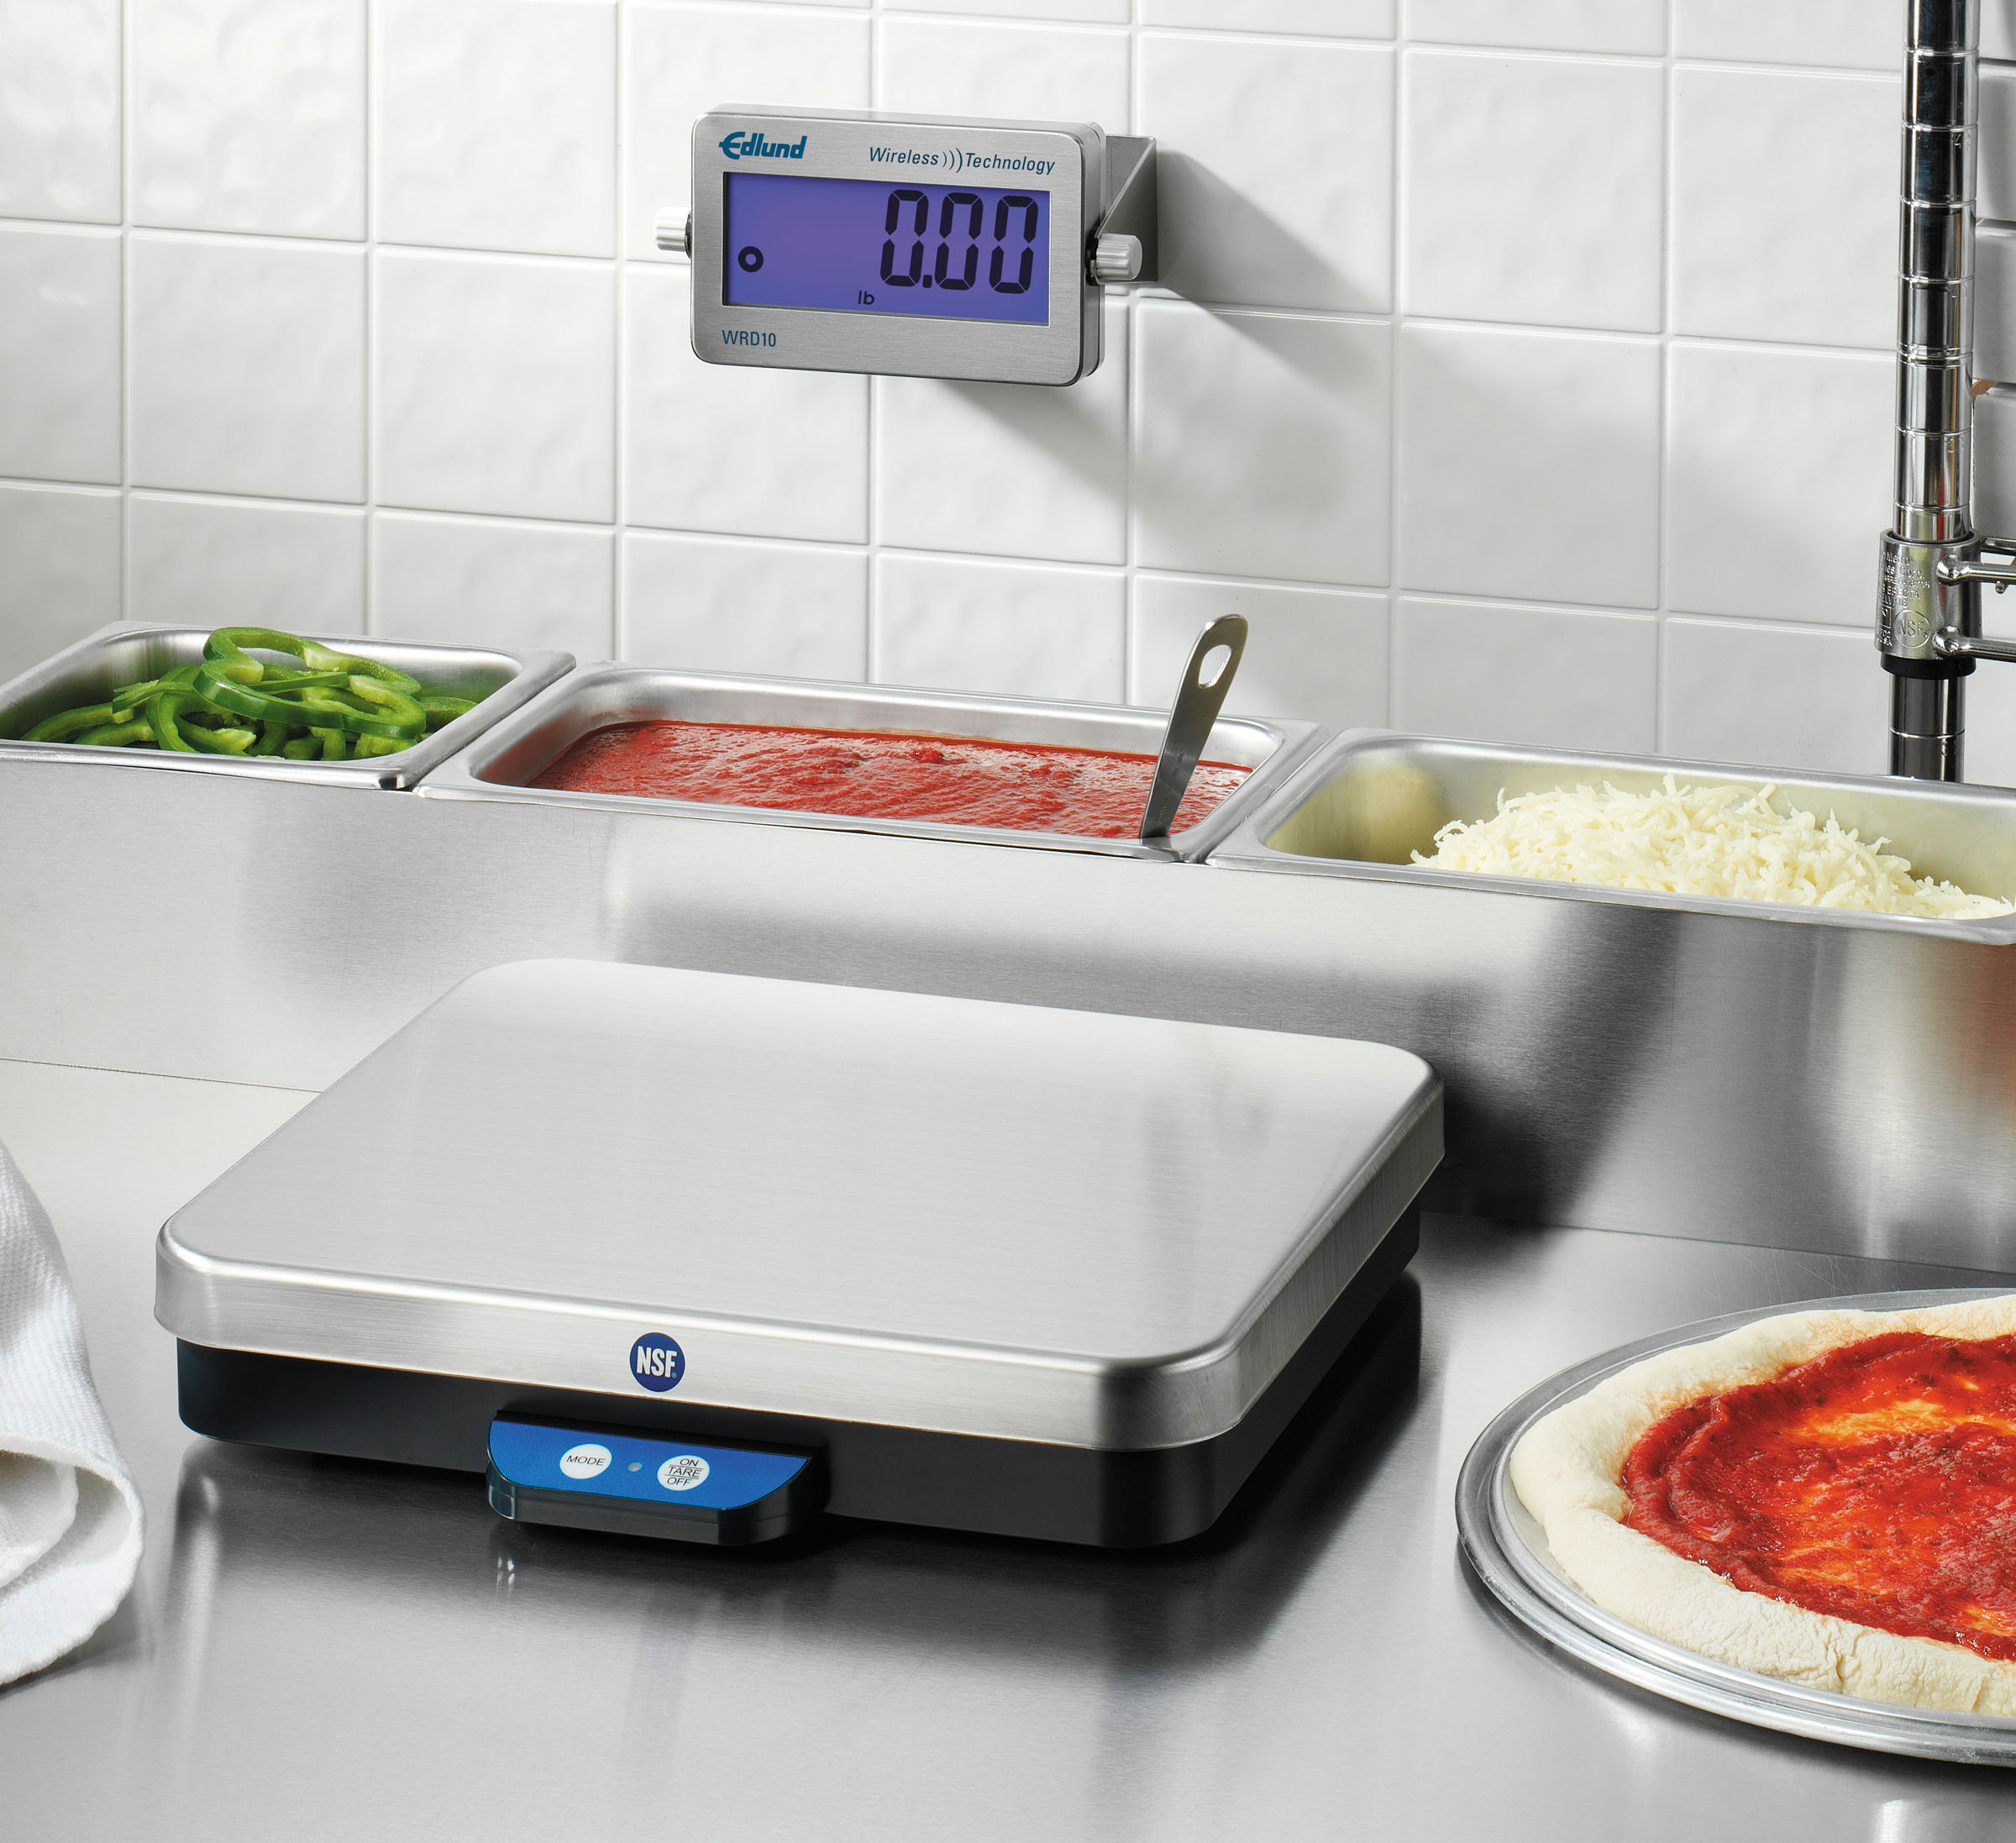 Edlund 10 Lb Wireless Remote Digital Pizza Portion Scale W/ Foot/Hip Tare Switch